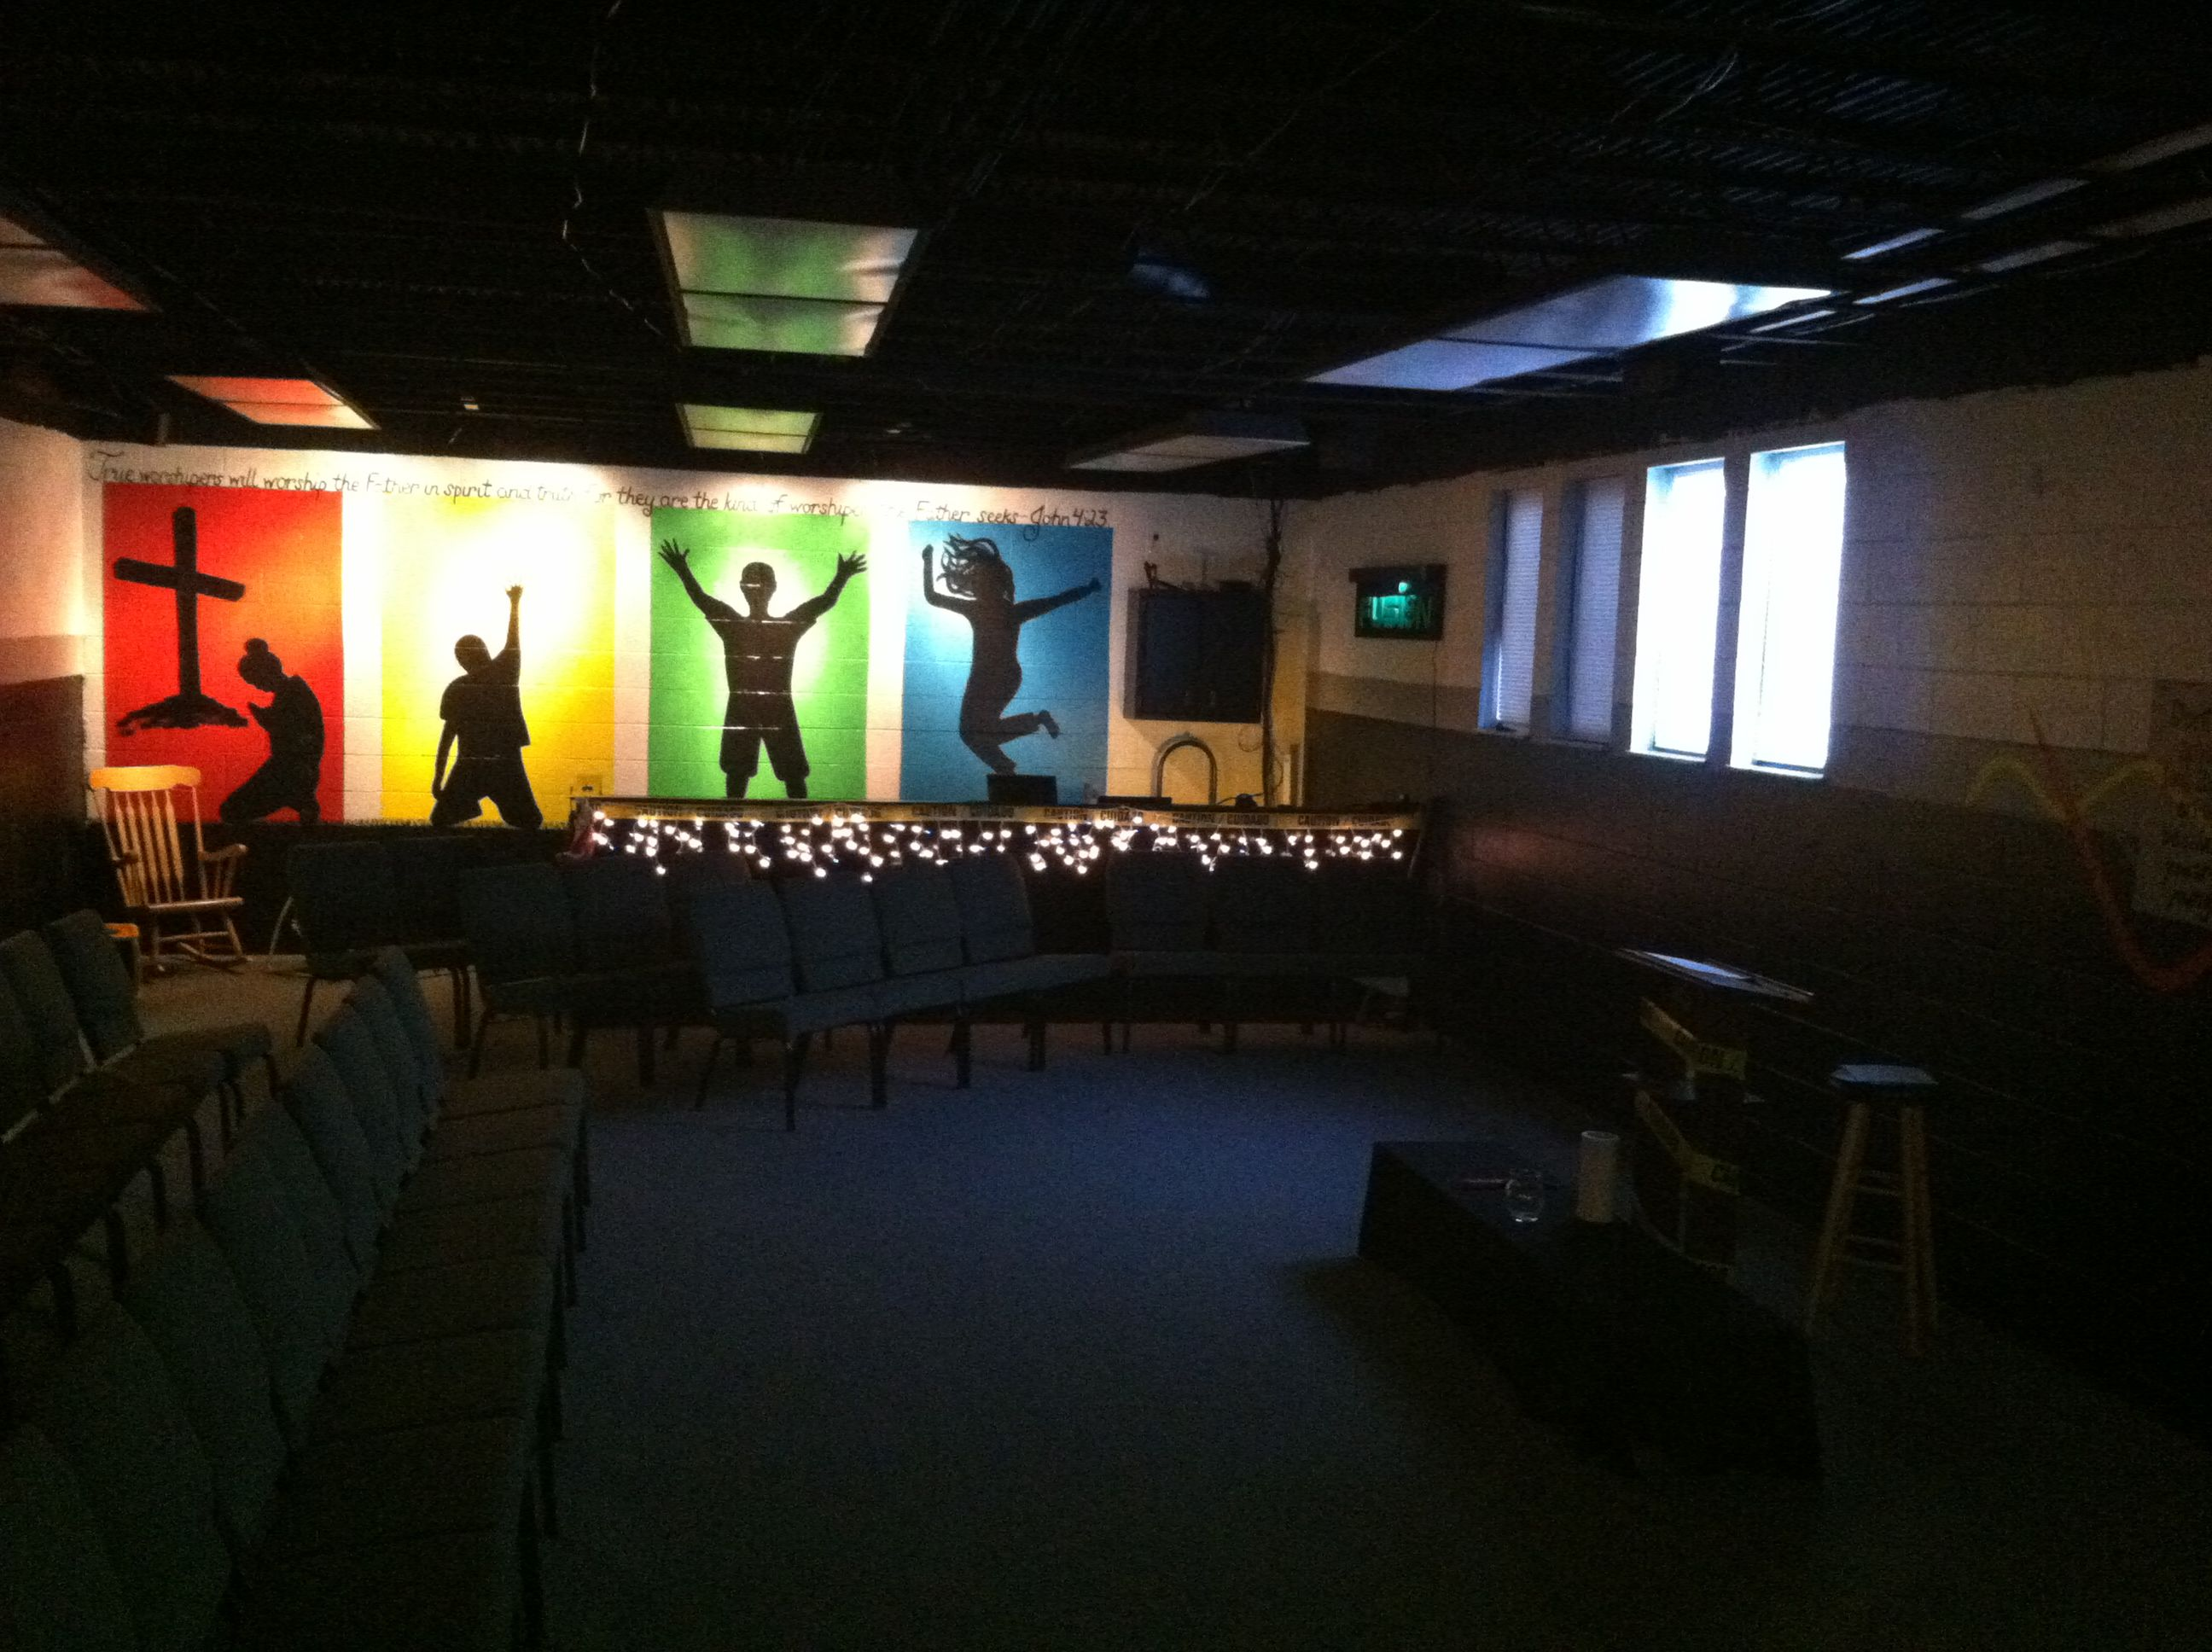 Wall mural and sound booth youth ministry church for Church mural ideas